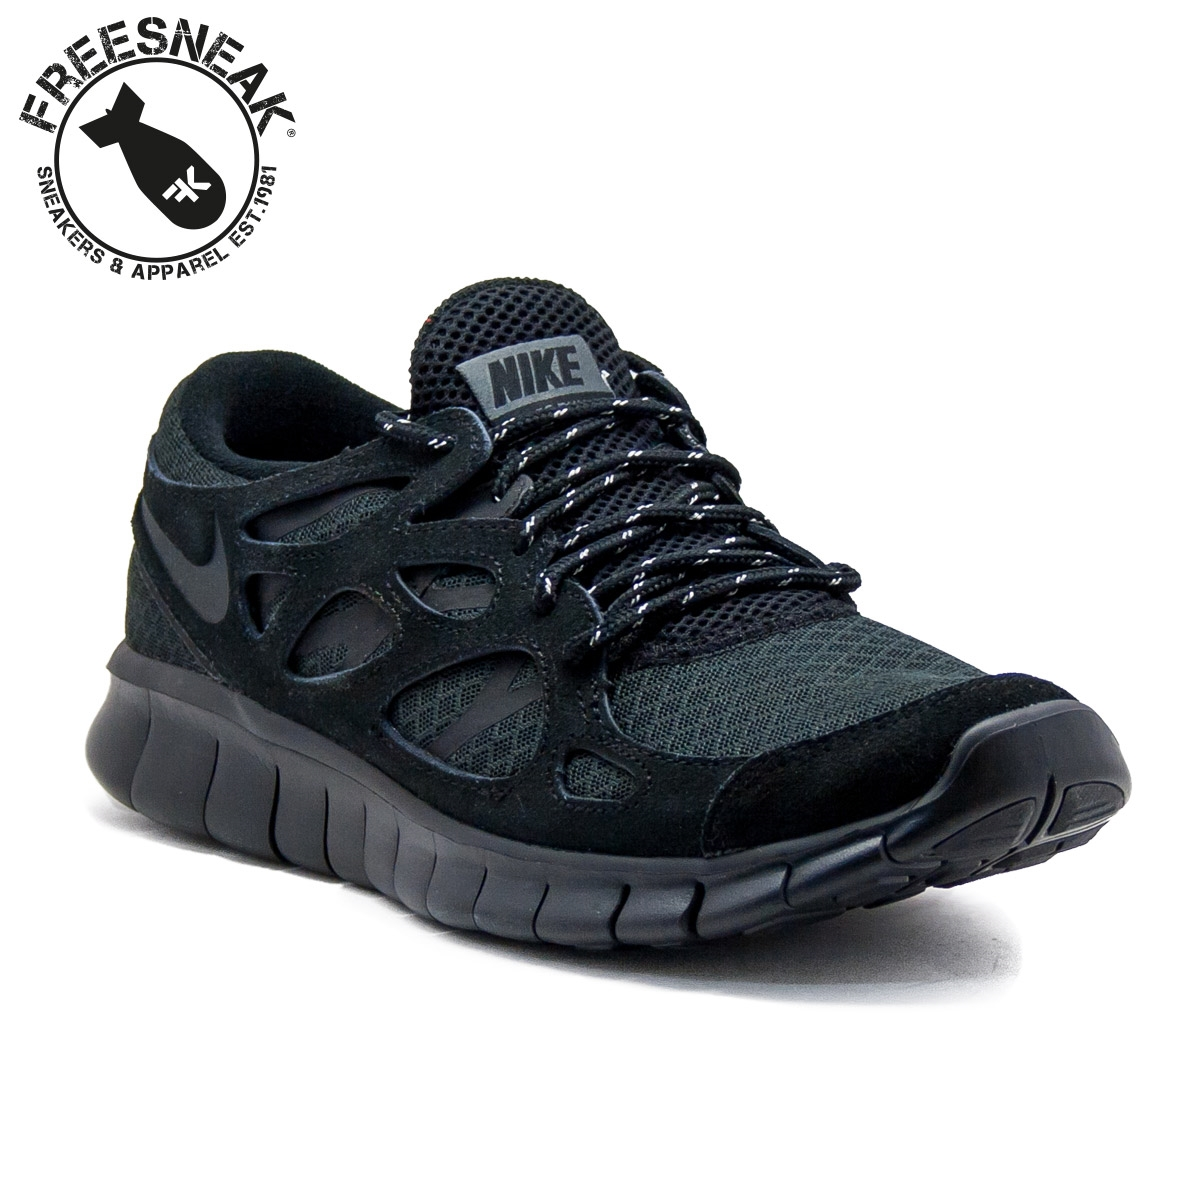 NIKE FREE RUN 2 TOTAL BLACK 537732-020